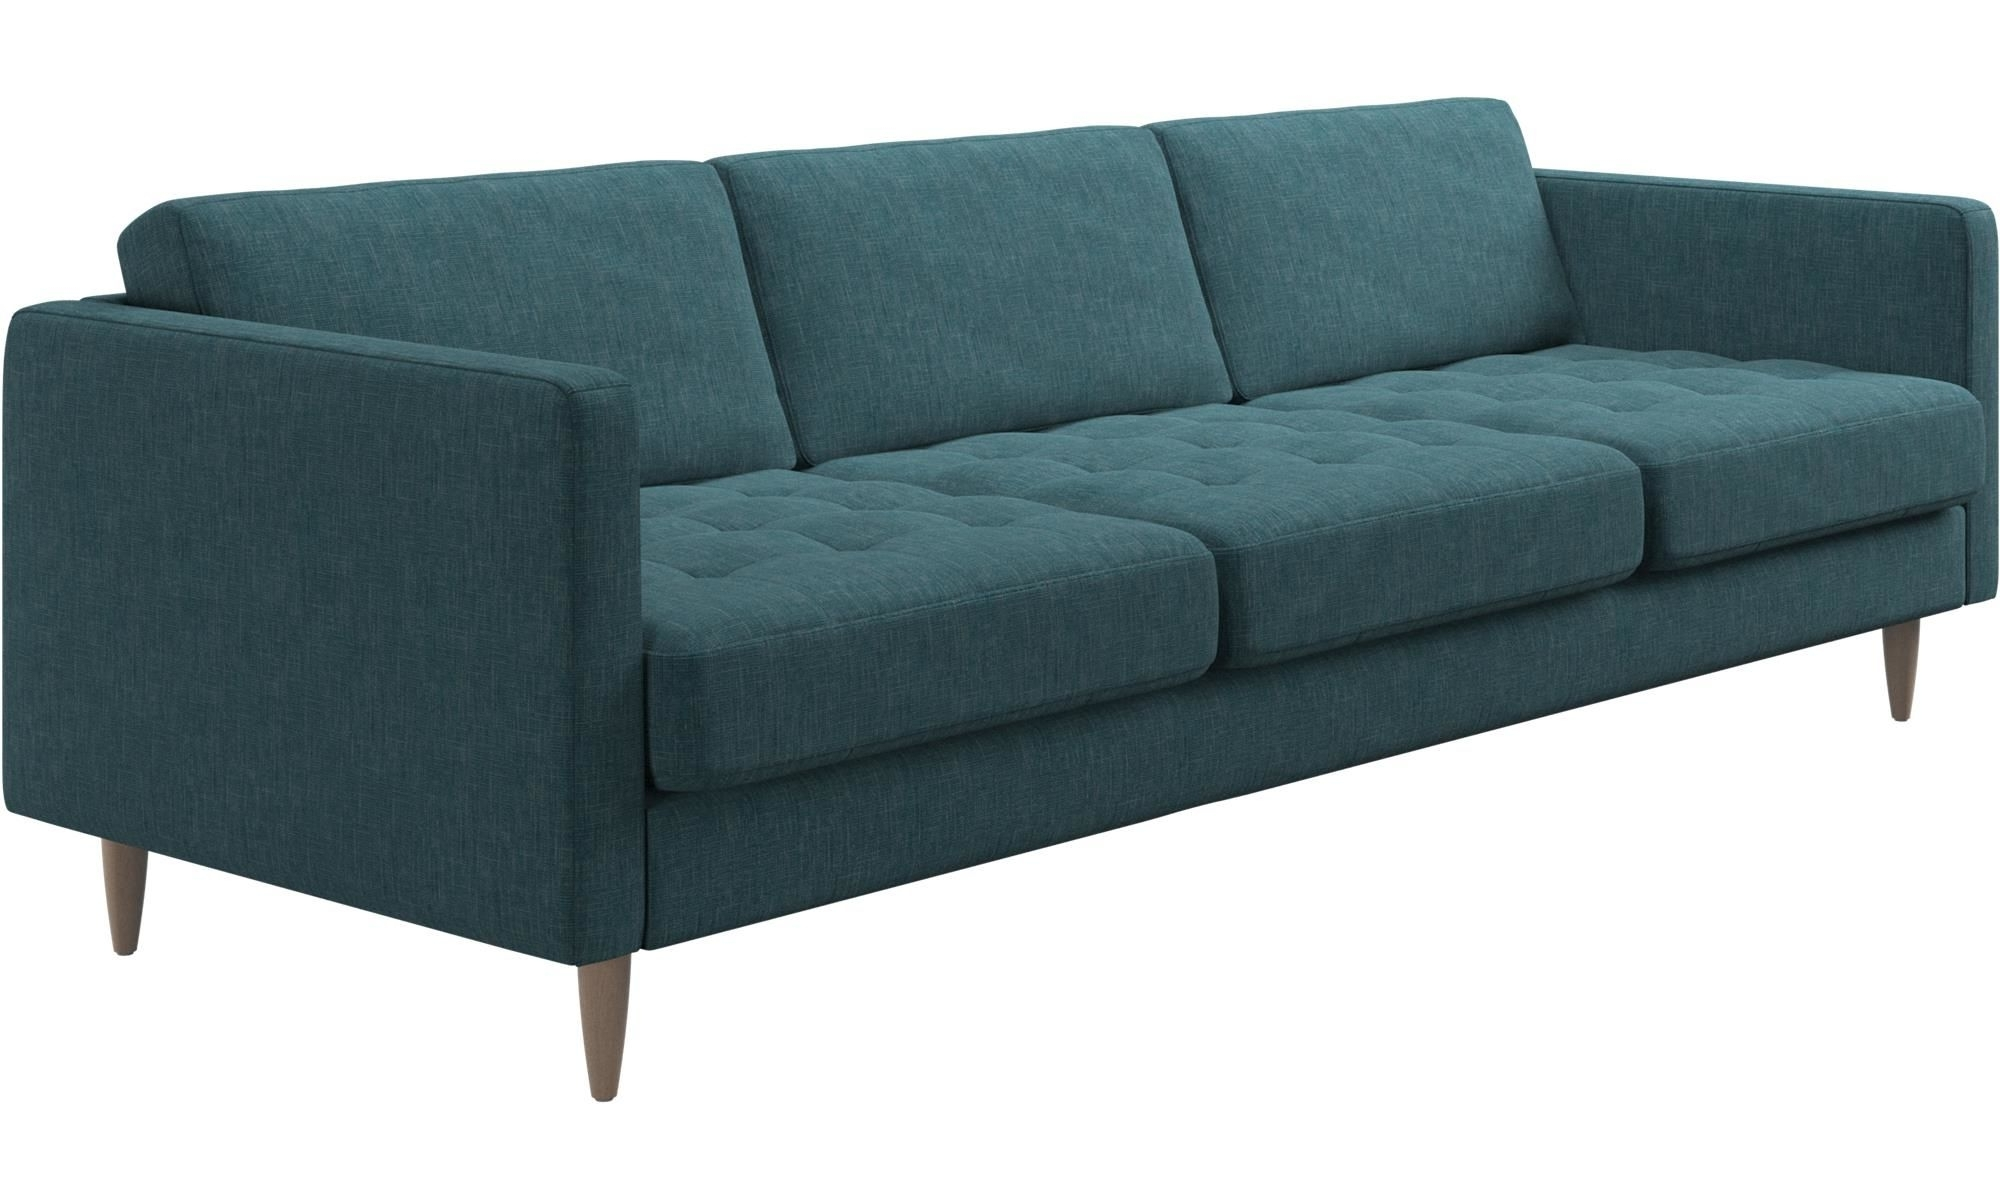 Well Liked Pensacola Fl Sectional Sofas Inside Furniture : Kelsey Tufted Loveseat Furniture Craigslist Pensacola (View 11 of 20)